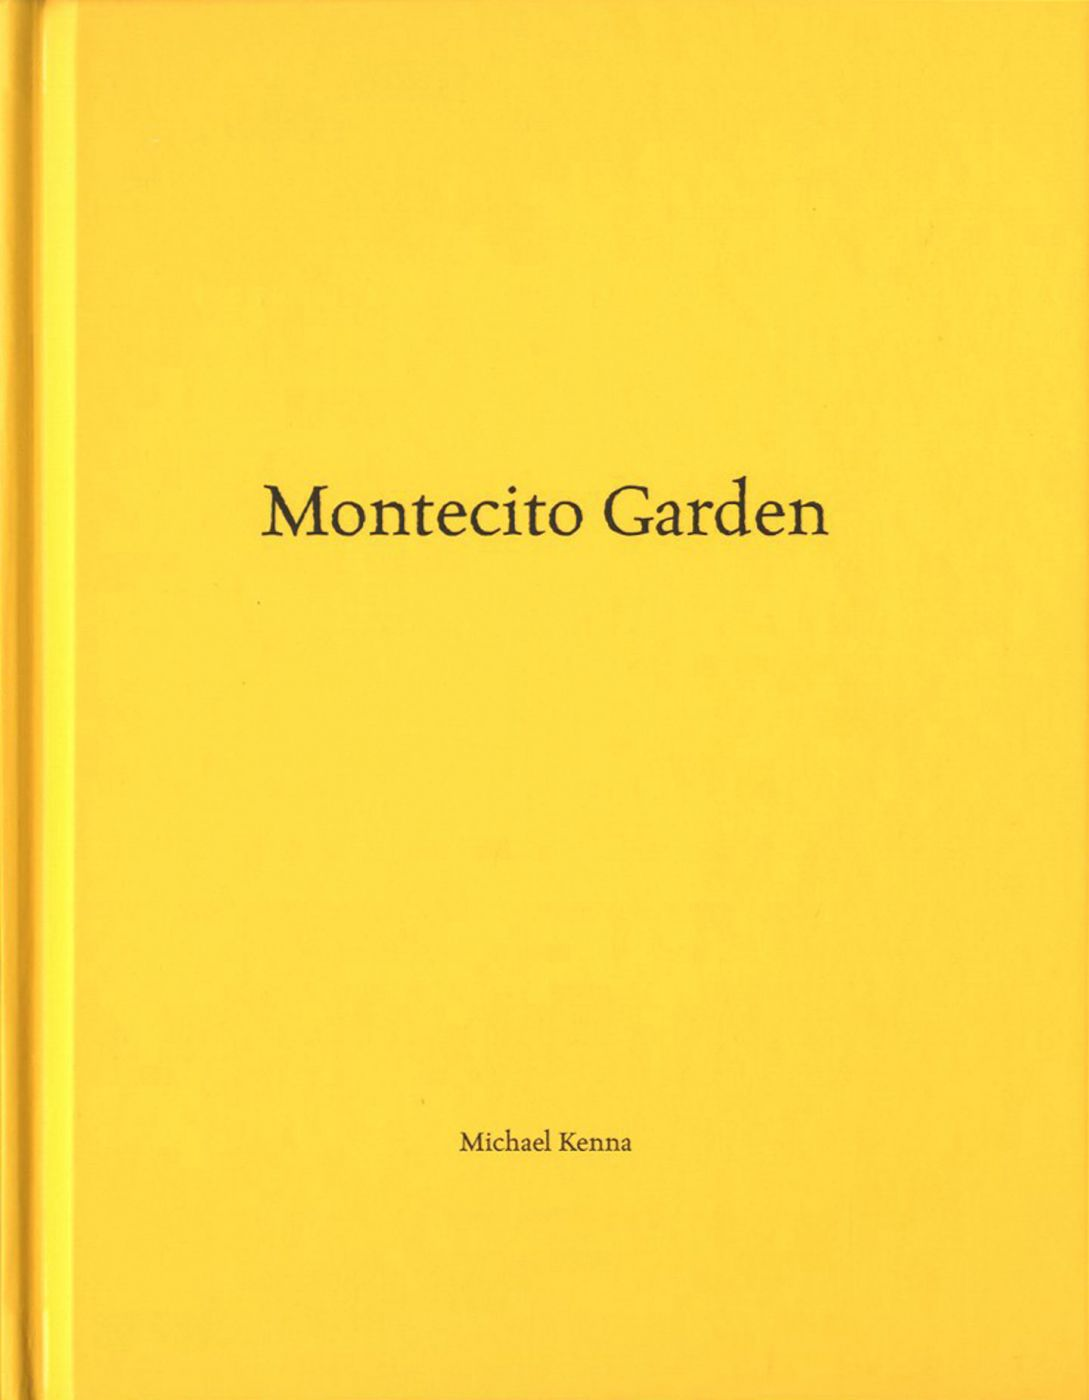 Michael Kenna: Montecito Garden (One Picture Book #41), Limited Edition (with Print)